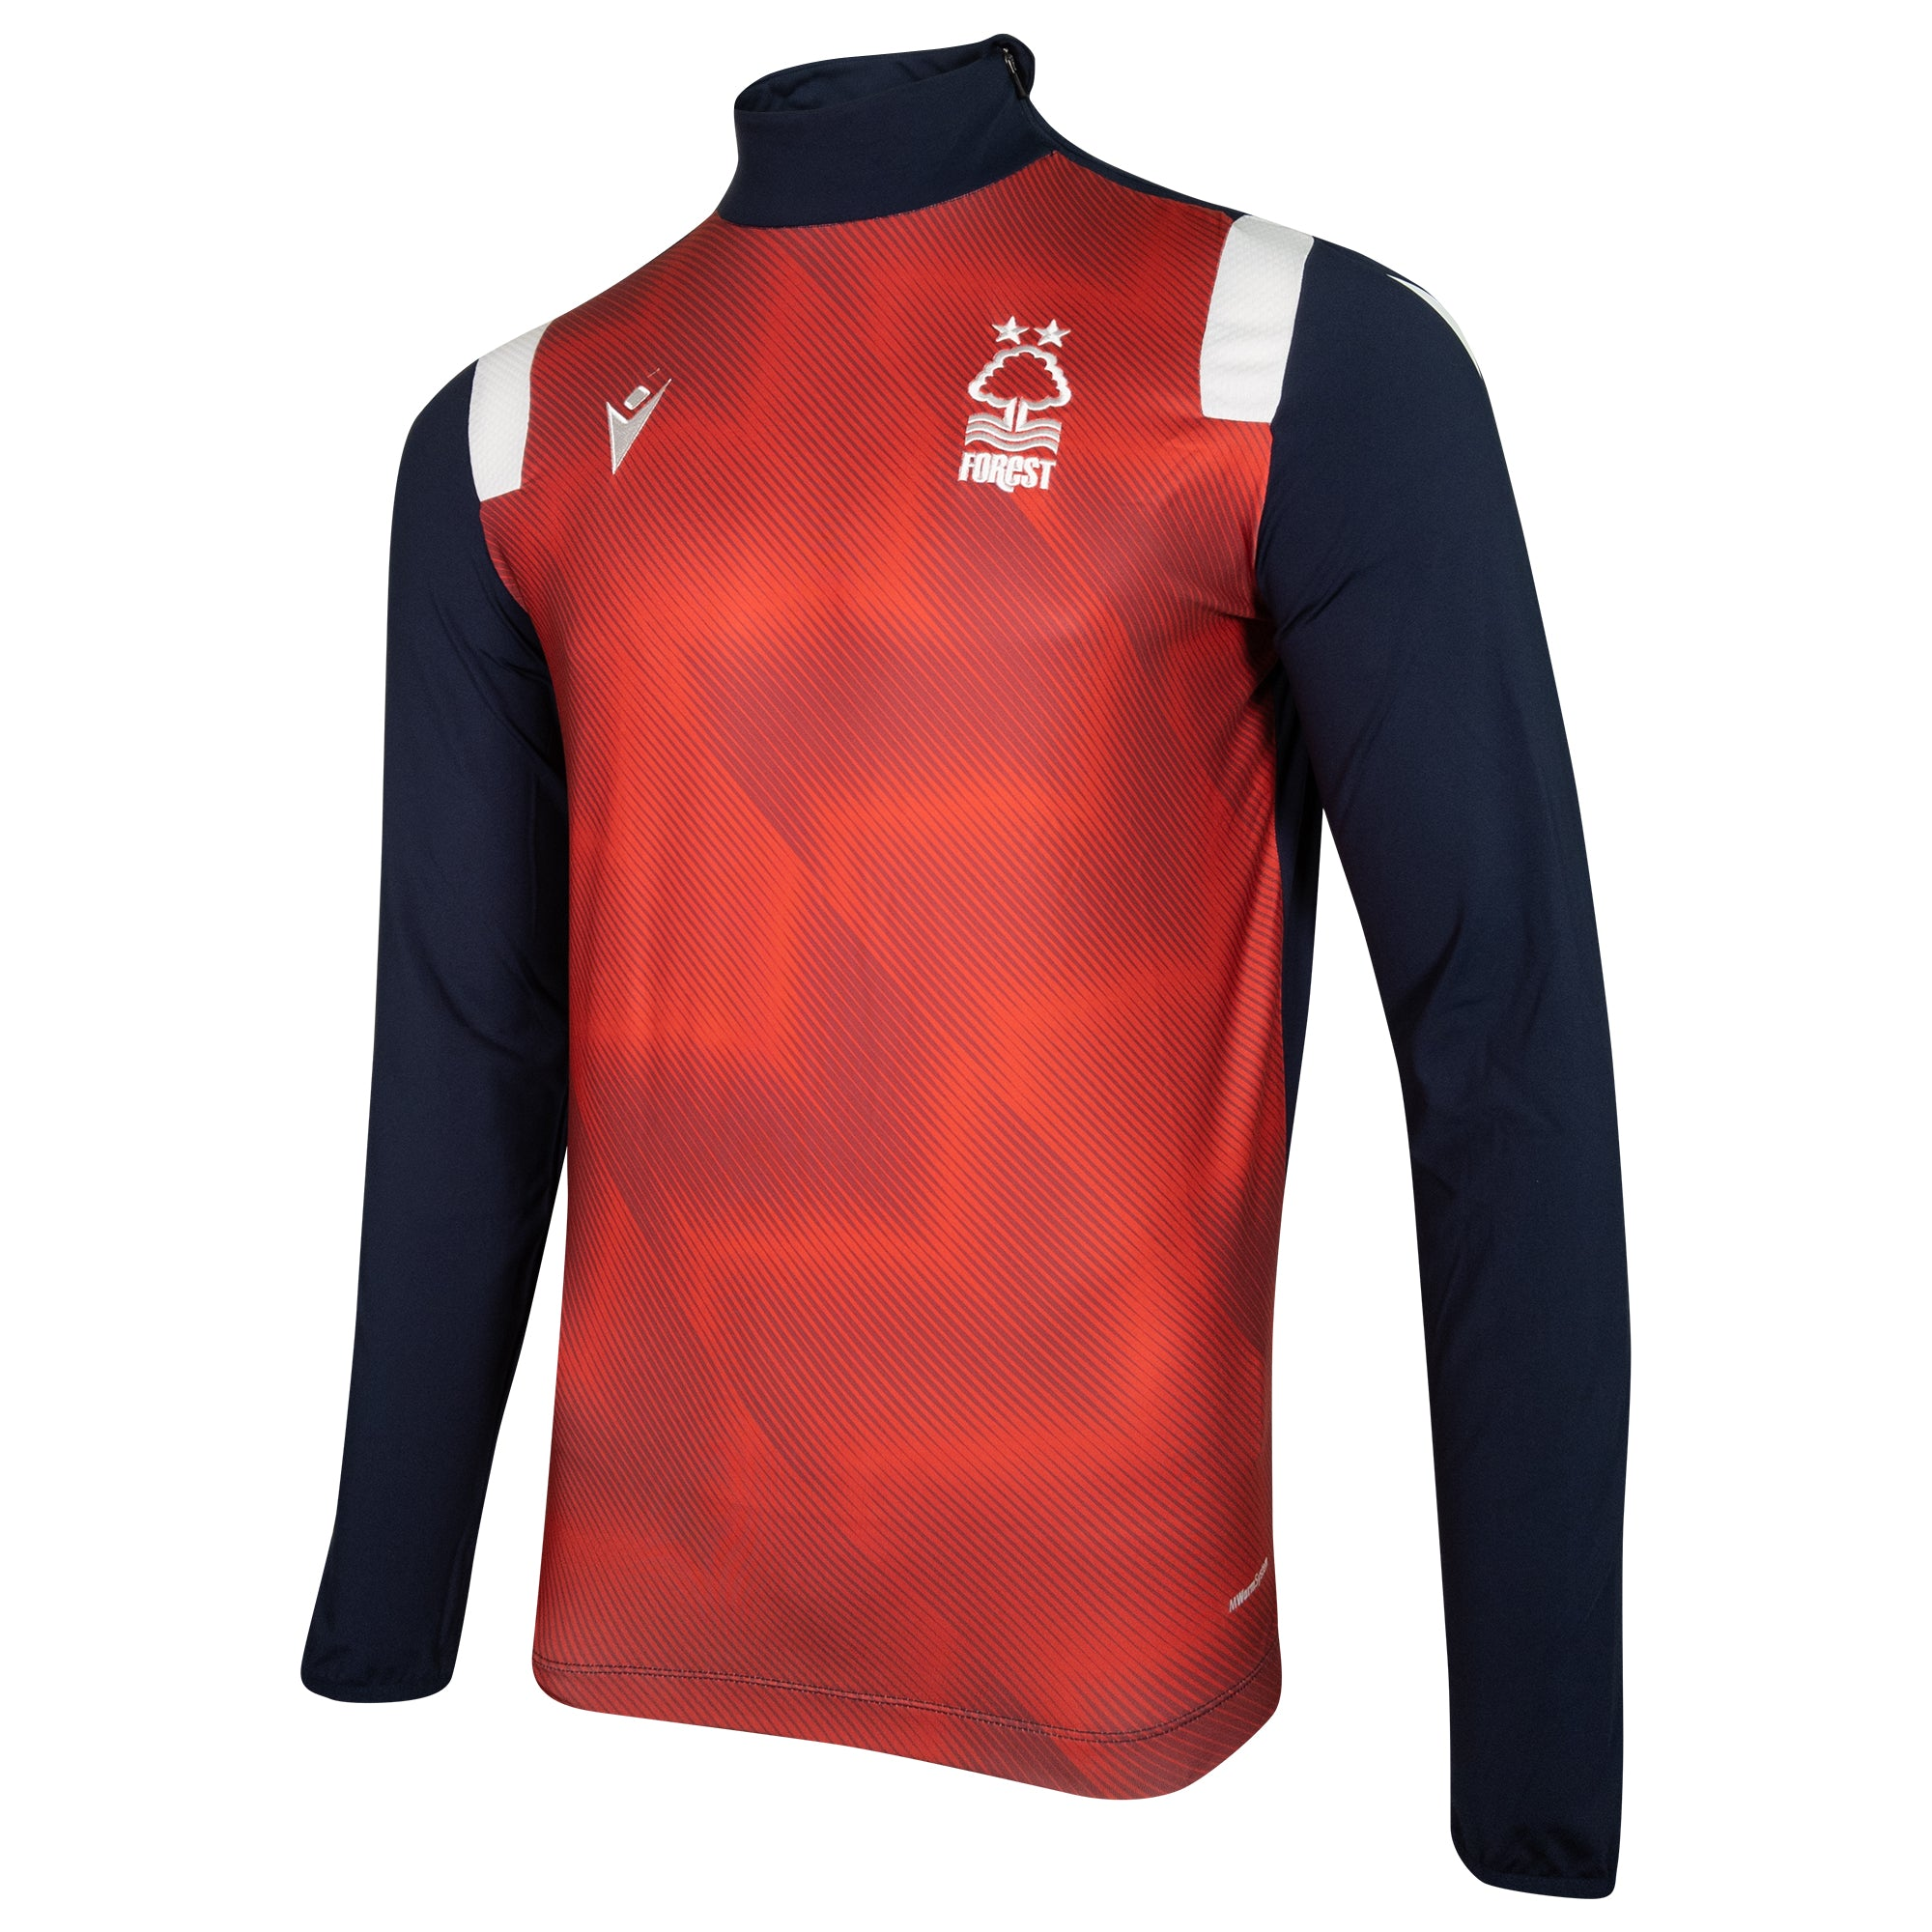 NFFC Junior Player Training 1/4 Zip Top 2020/21